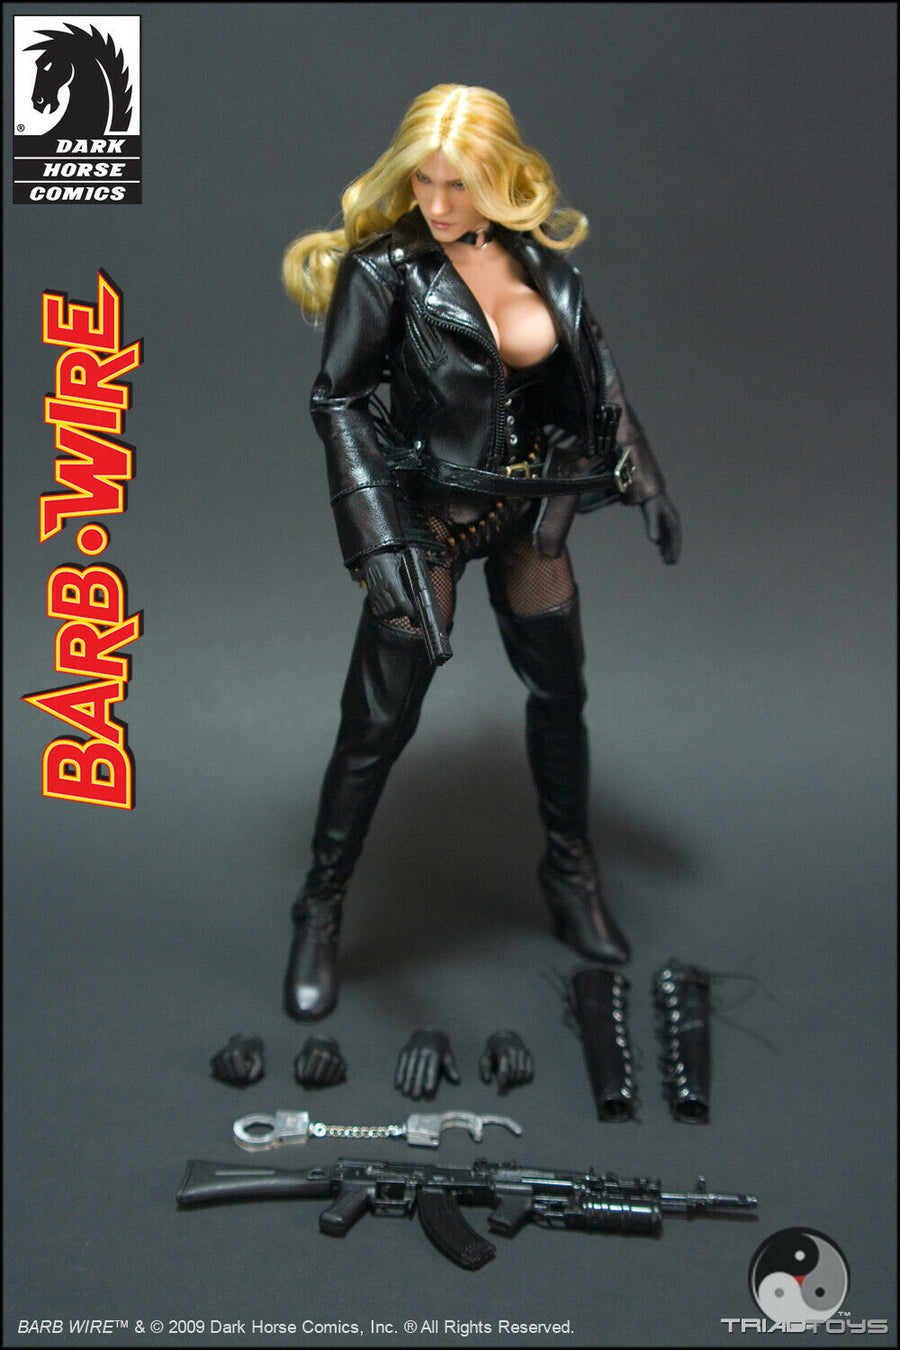 Barb Wire - Metal Bullet Chain